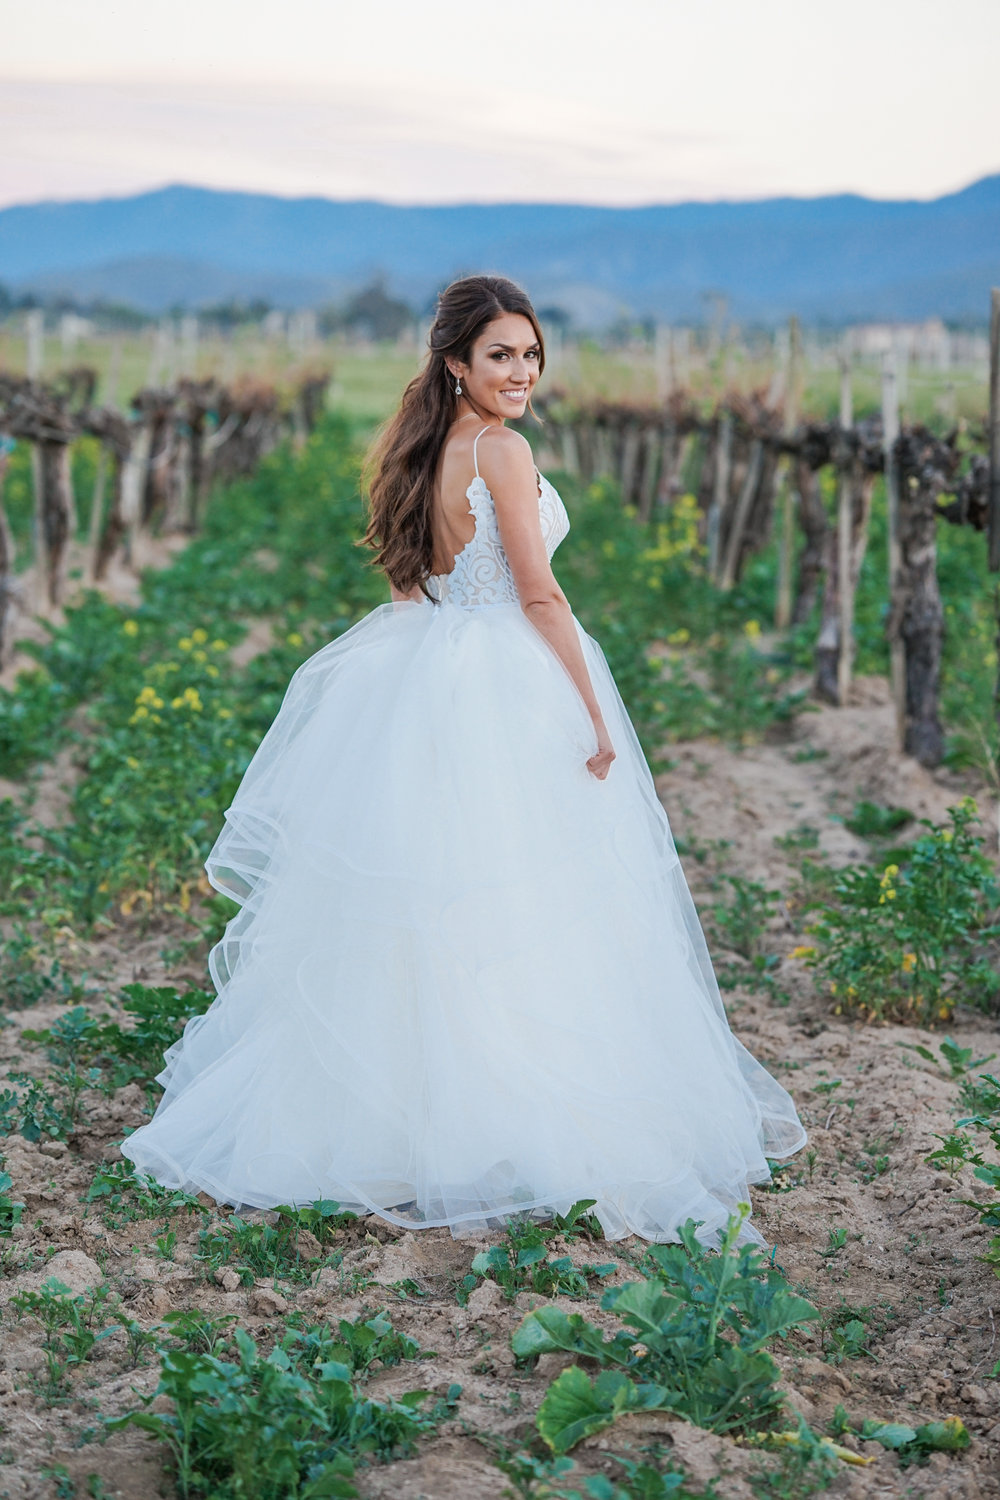 ponte_winery_wedding_temecula_0140.JPG